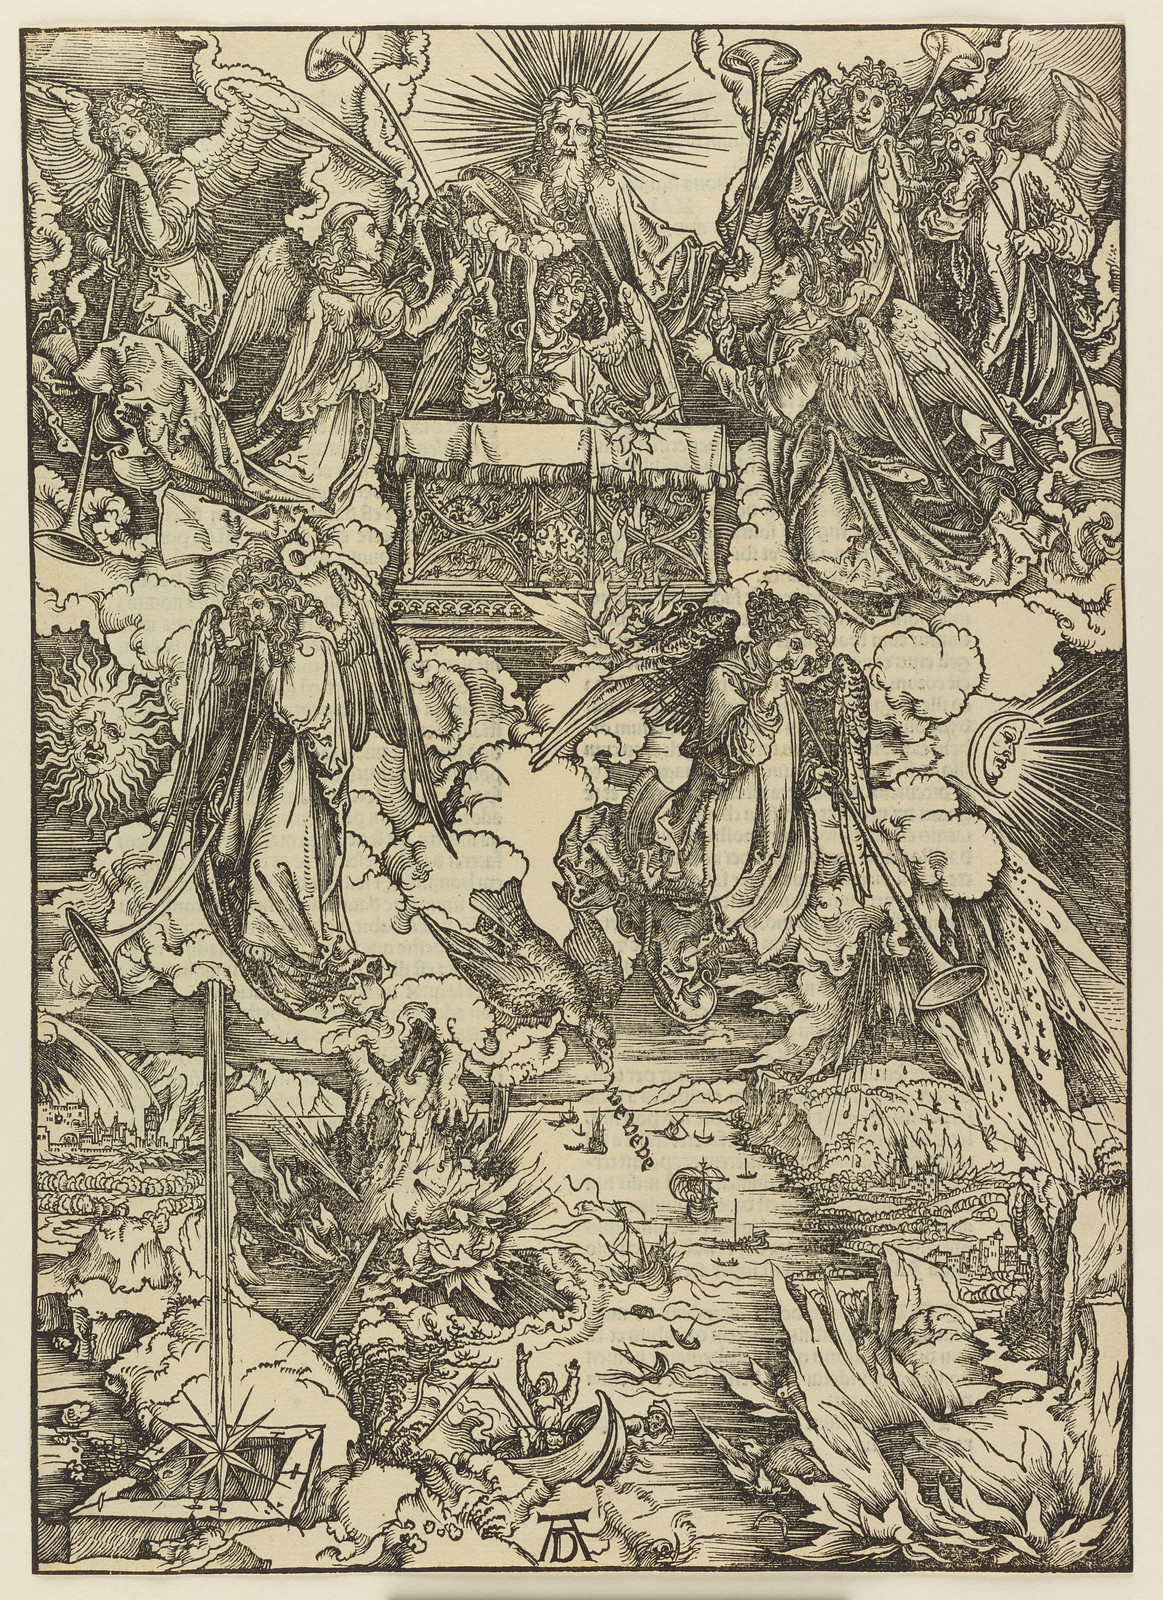 Albrecht Dürer - Seven angels with the trumpets, Plate seven of fifteen from the Latin edition of The Apocalypse series, printed 1511